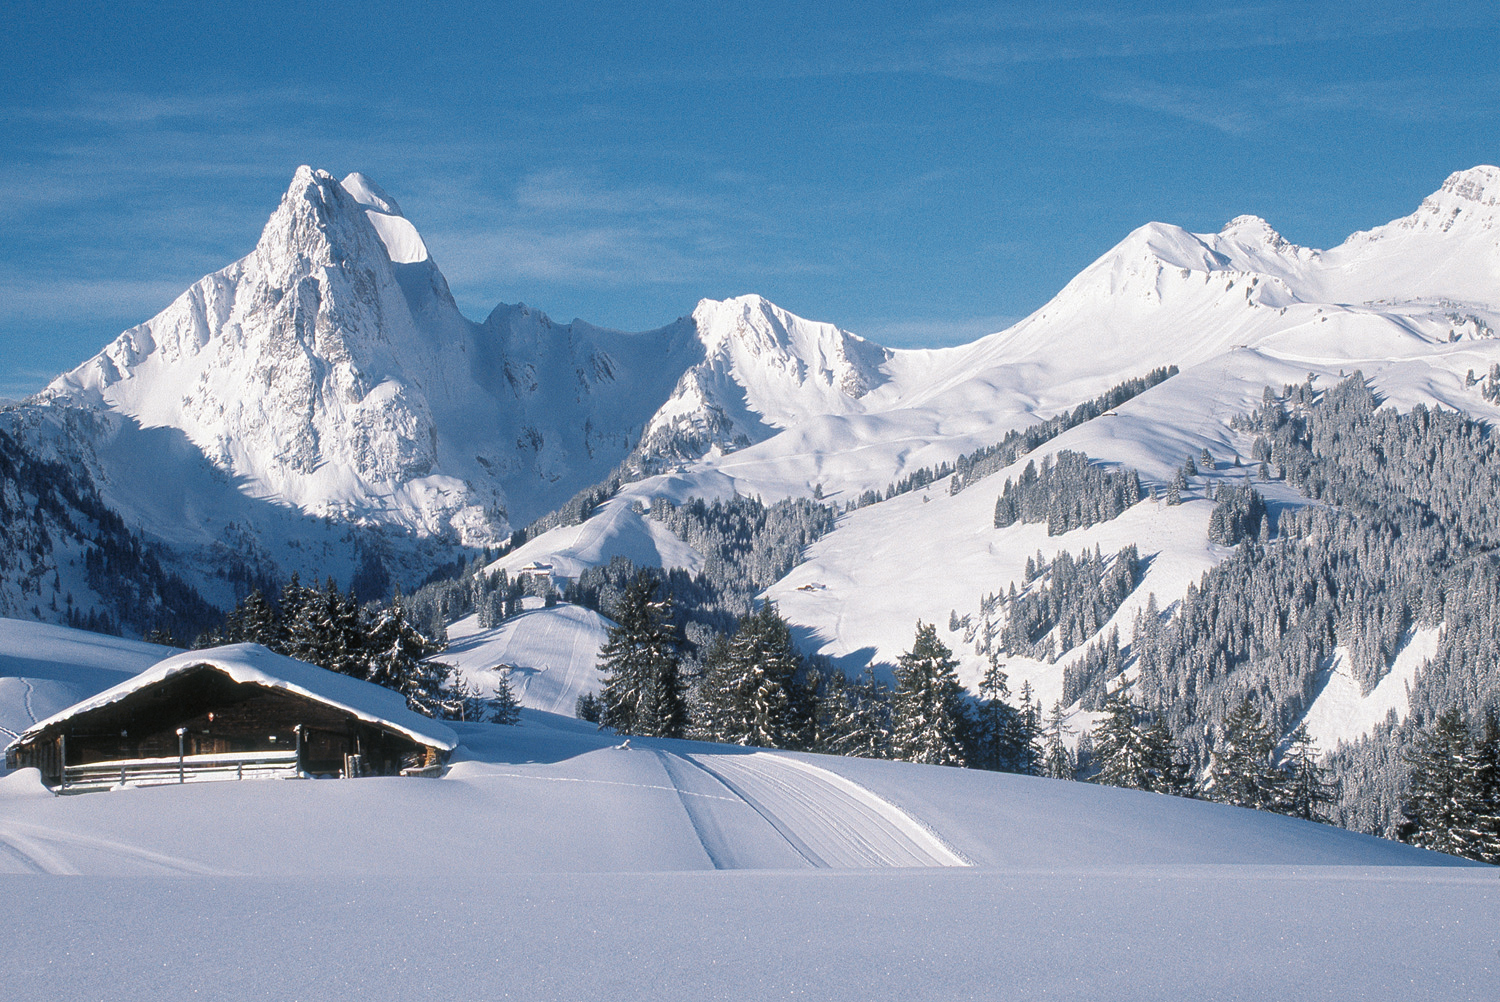 Skiing in Gstaad with the Gummfluh Mountain in the background (© Gstaad Saanenland Tourismus)